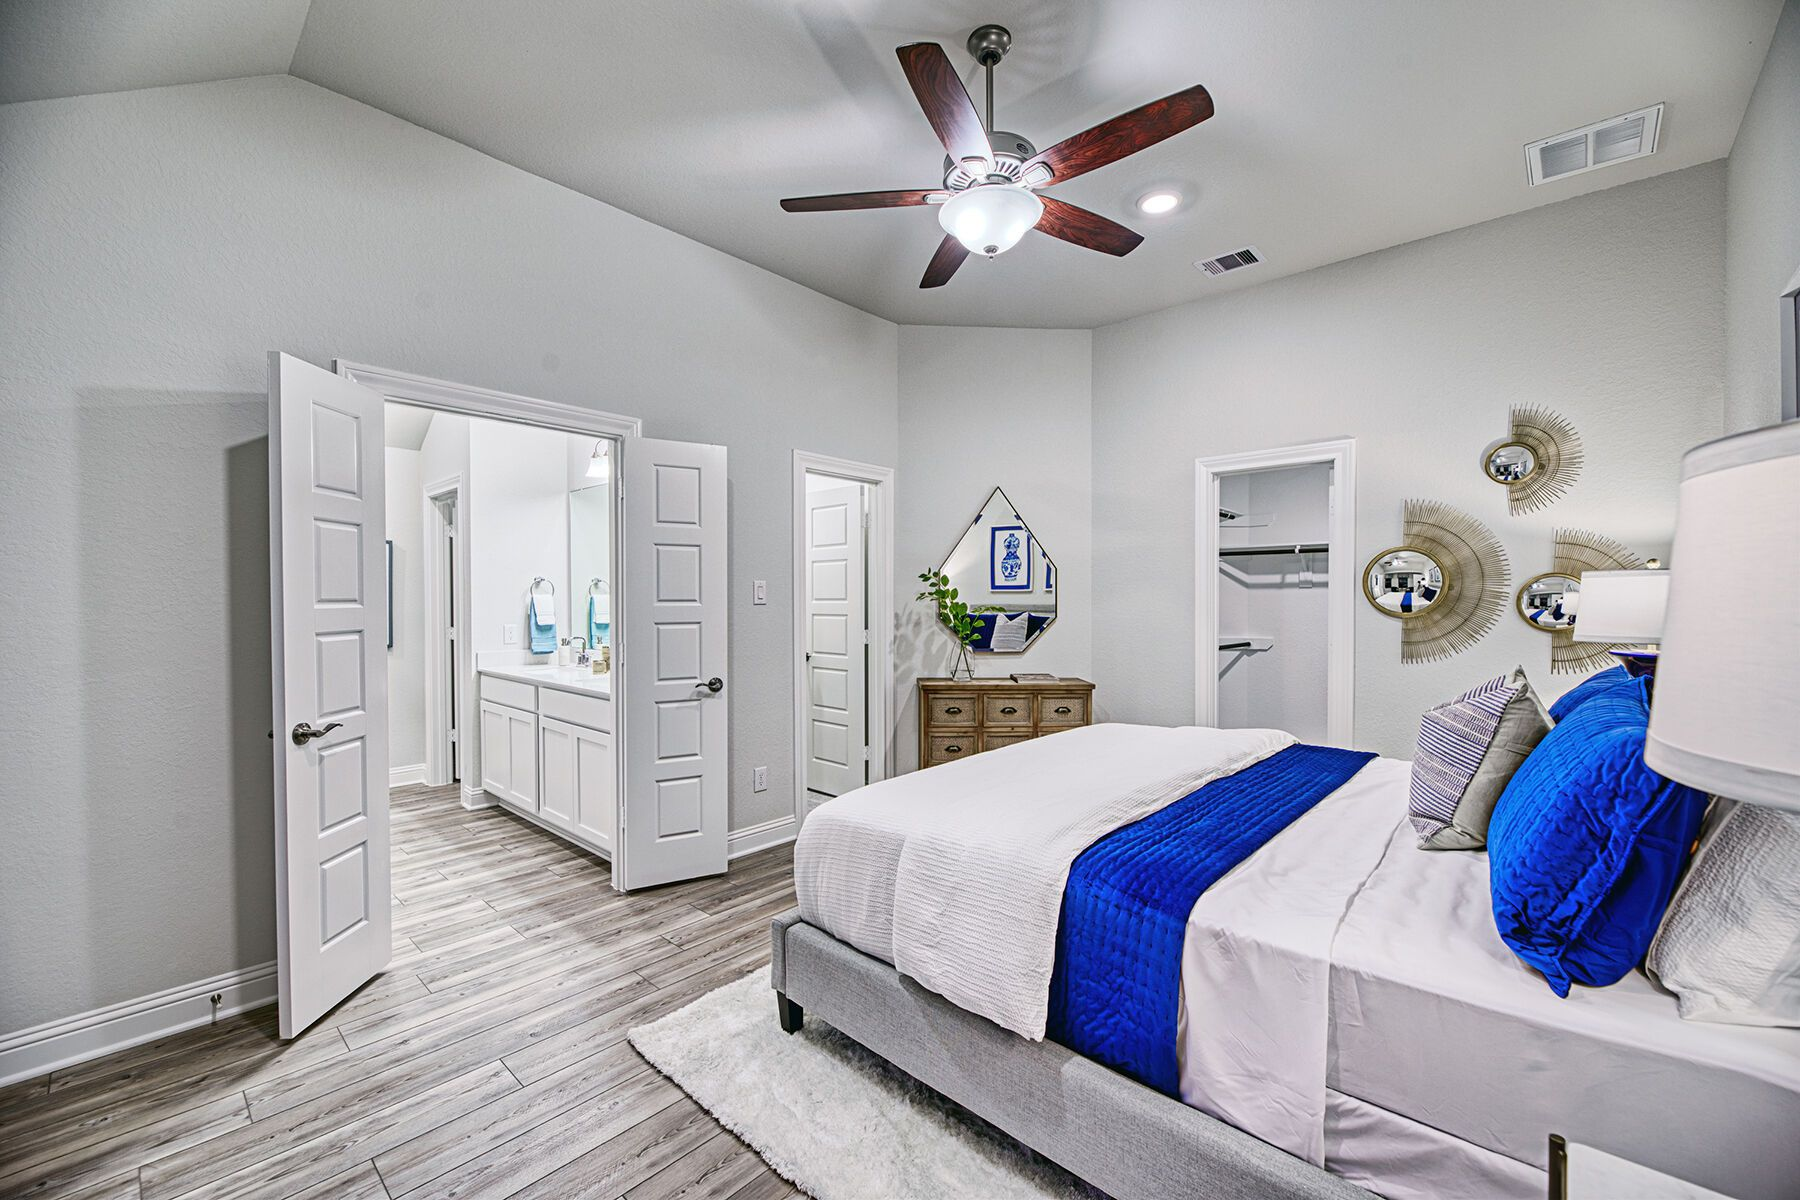 Bedroom featured in the Balboa By M/I Homes in Houston, TX